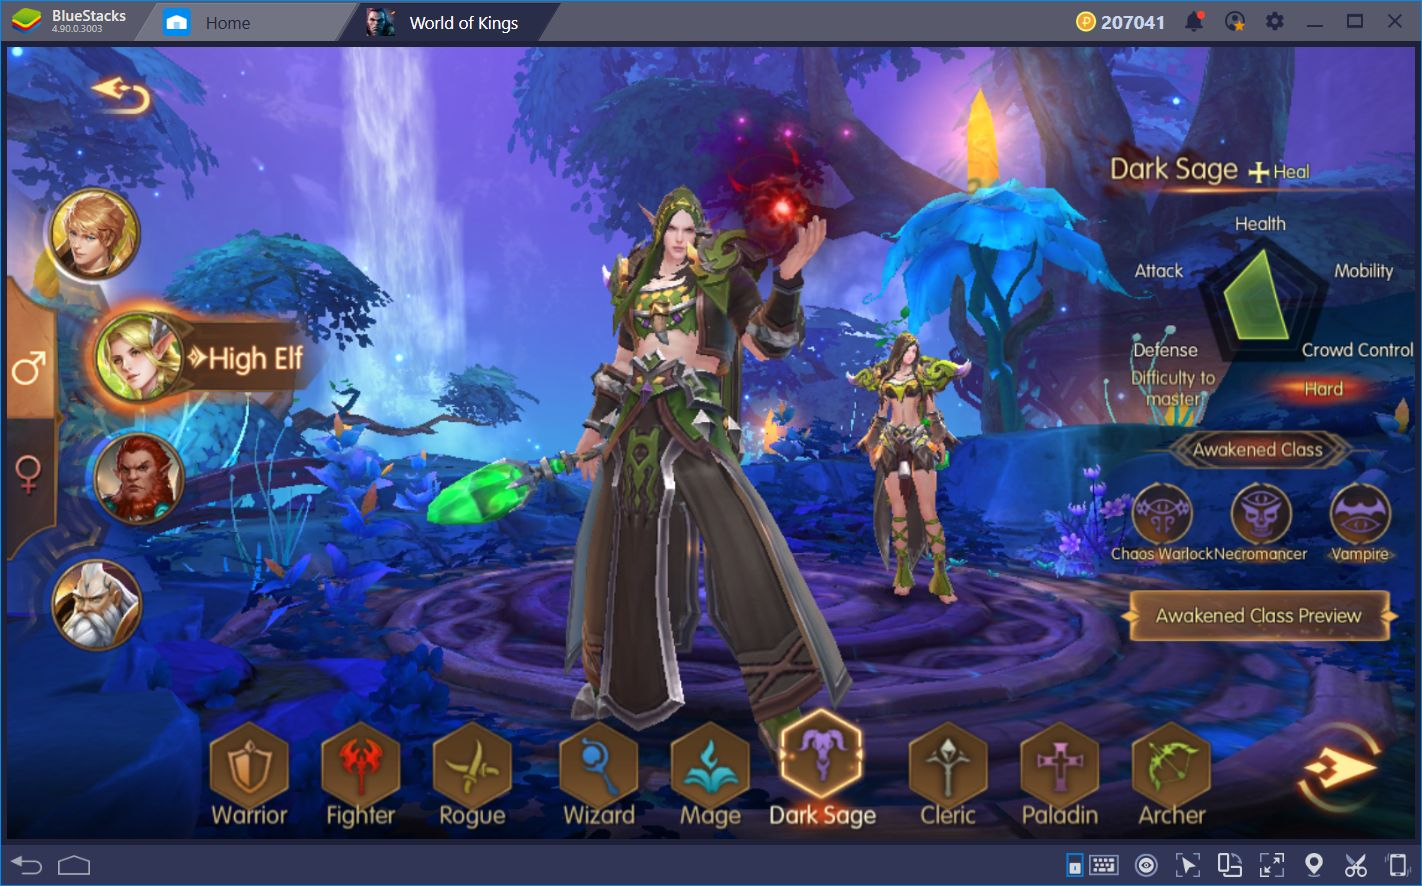 World of Kings: Like World of Warcraft, but on Android